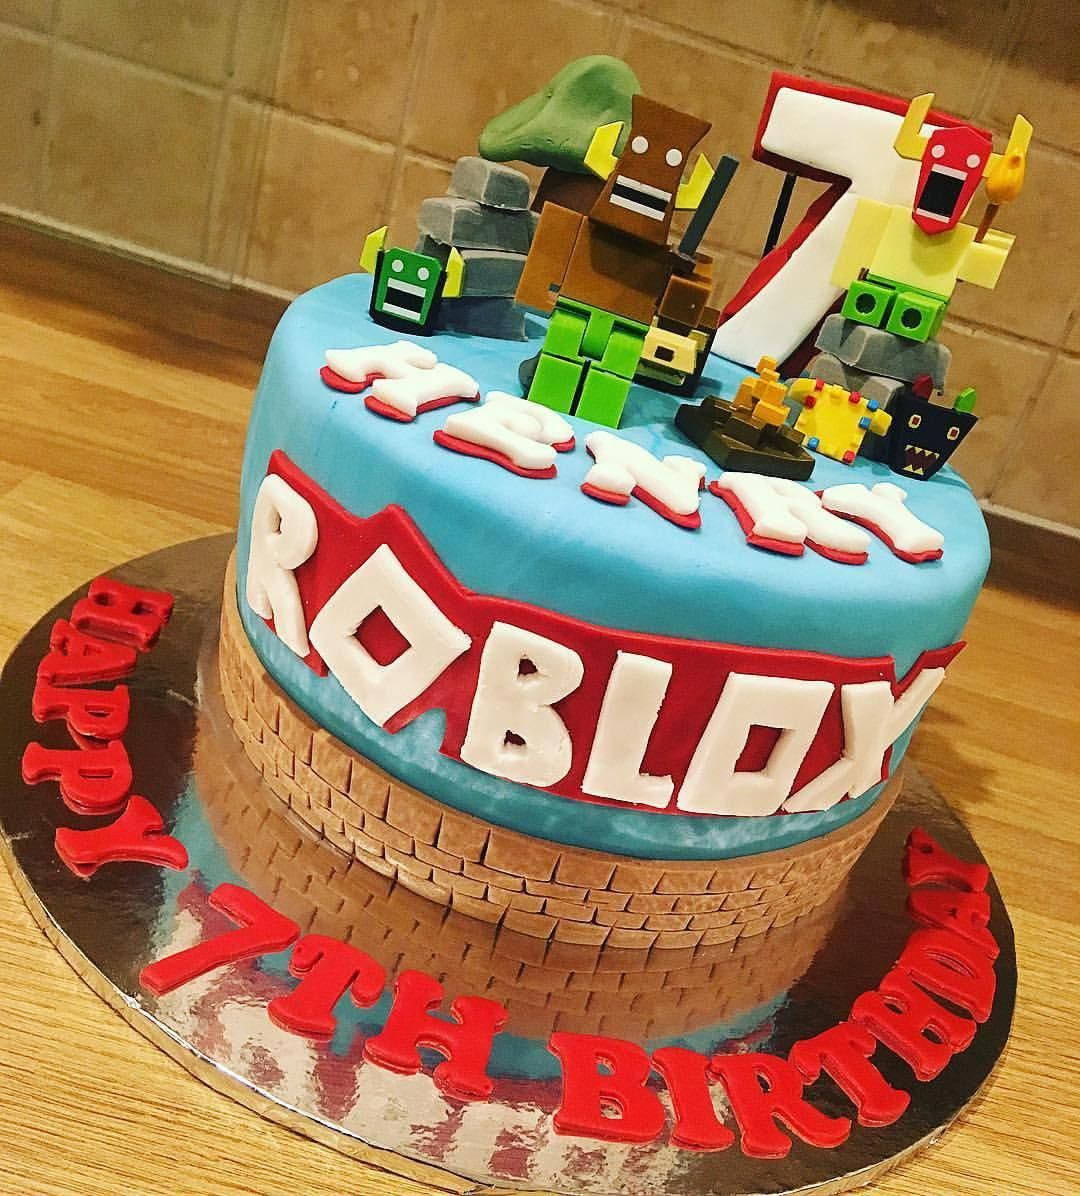 Yummy Chocolate Roblox Cake For Henry S 7th Birthday